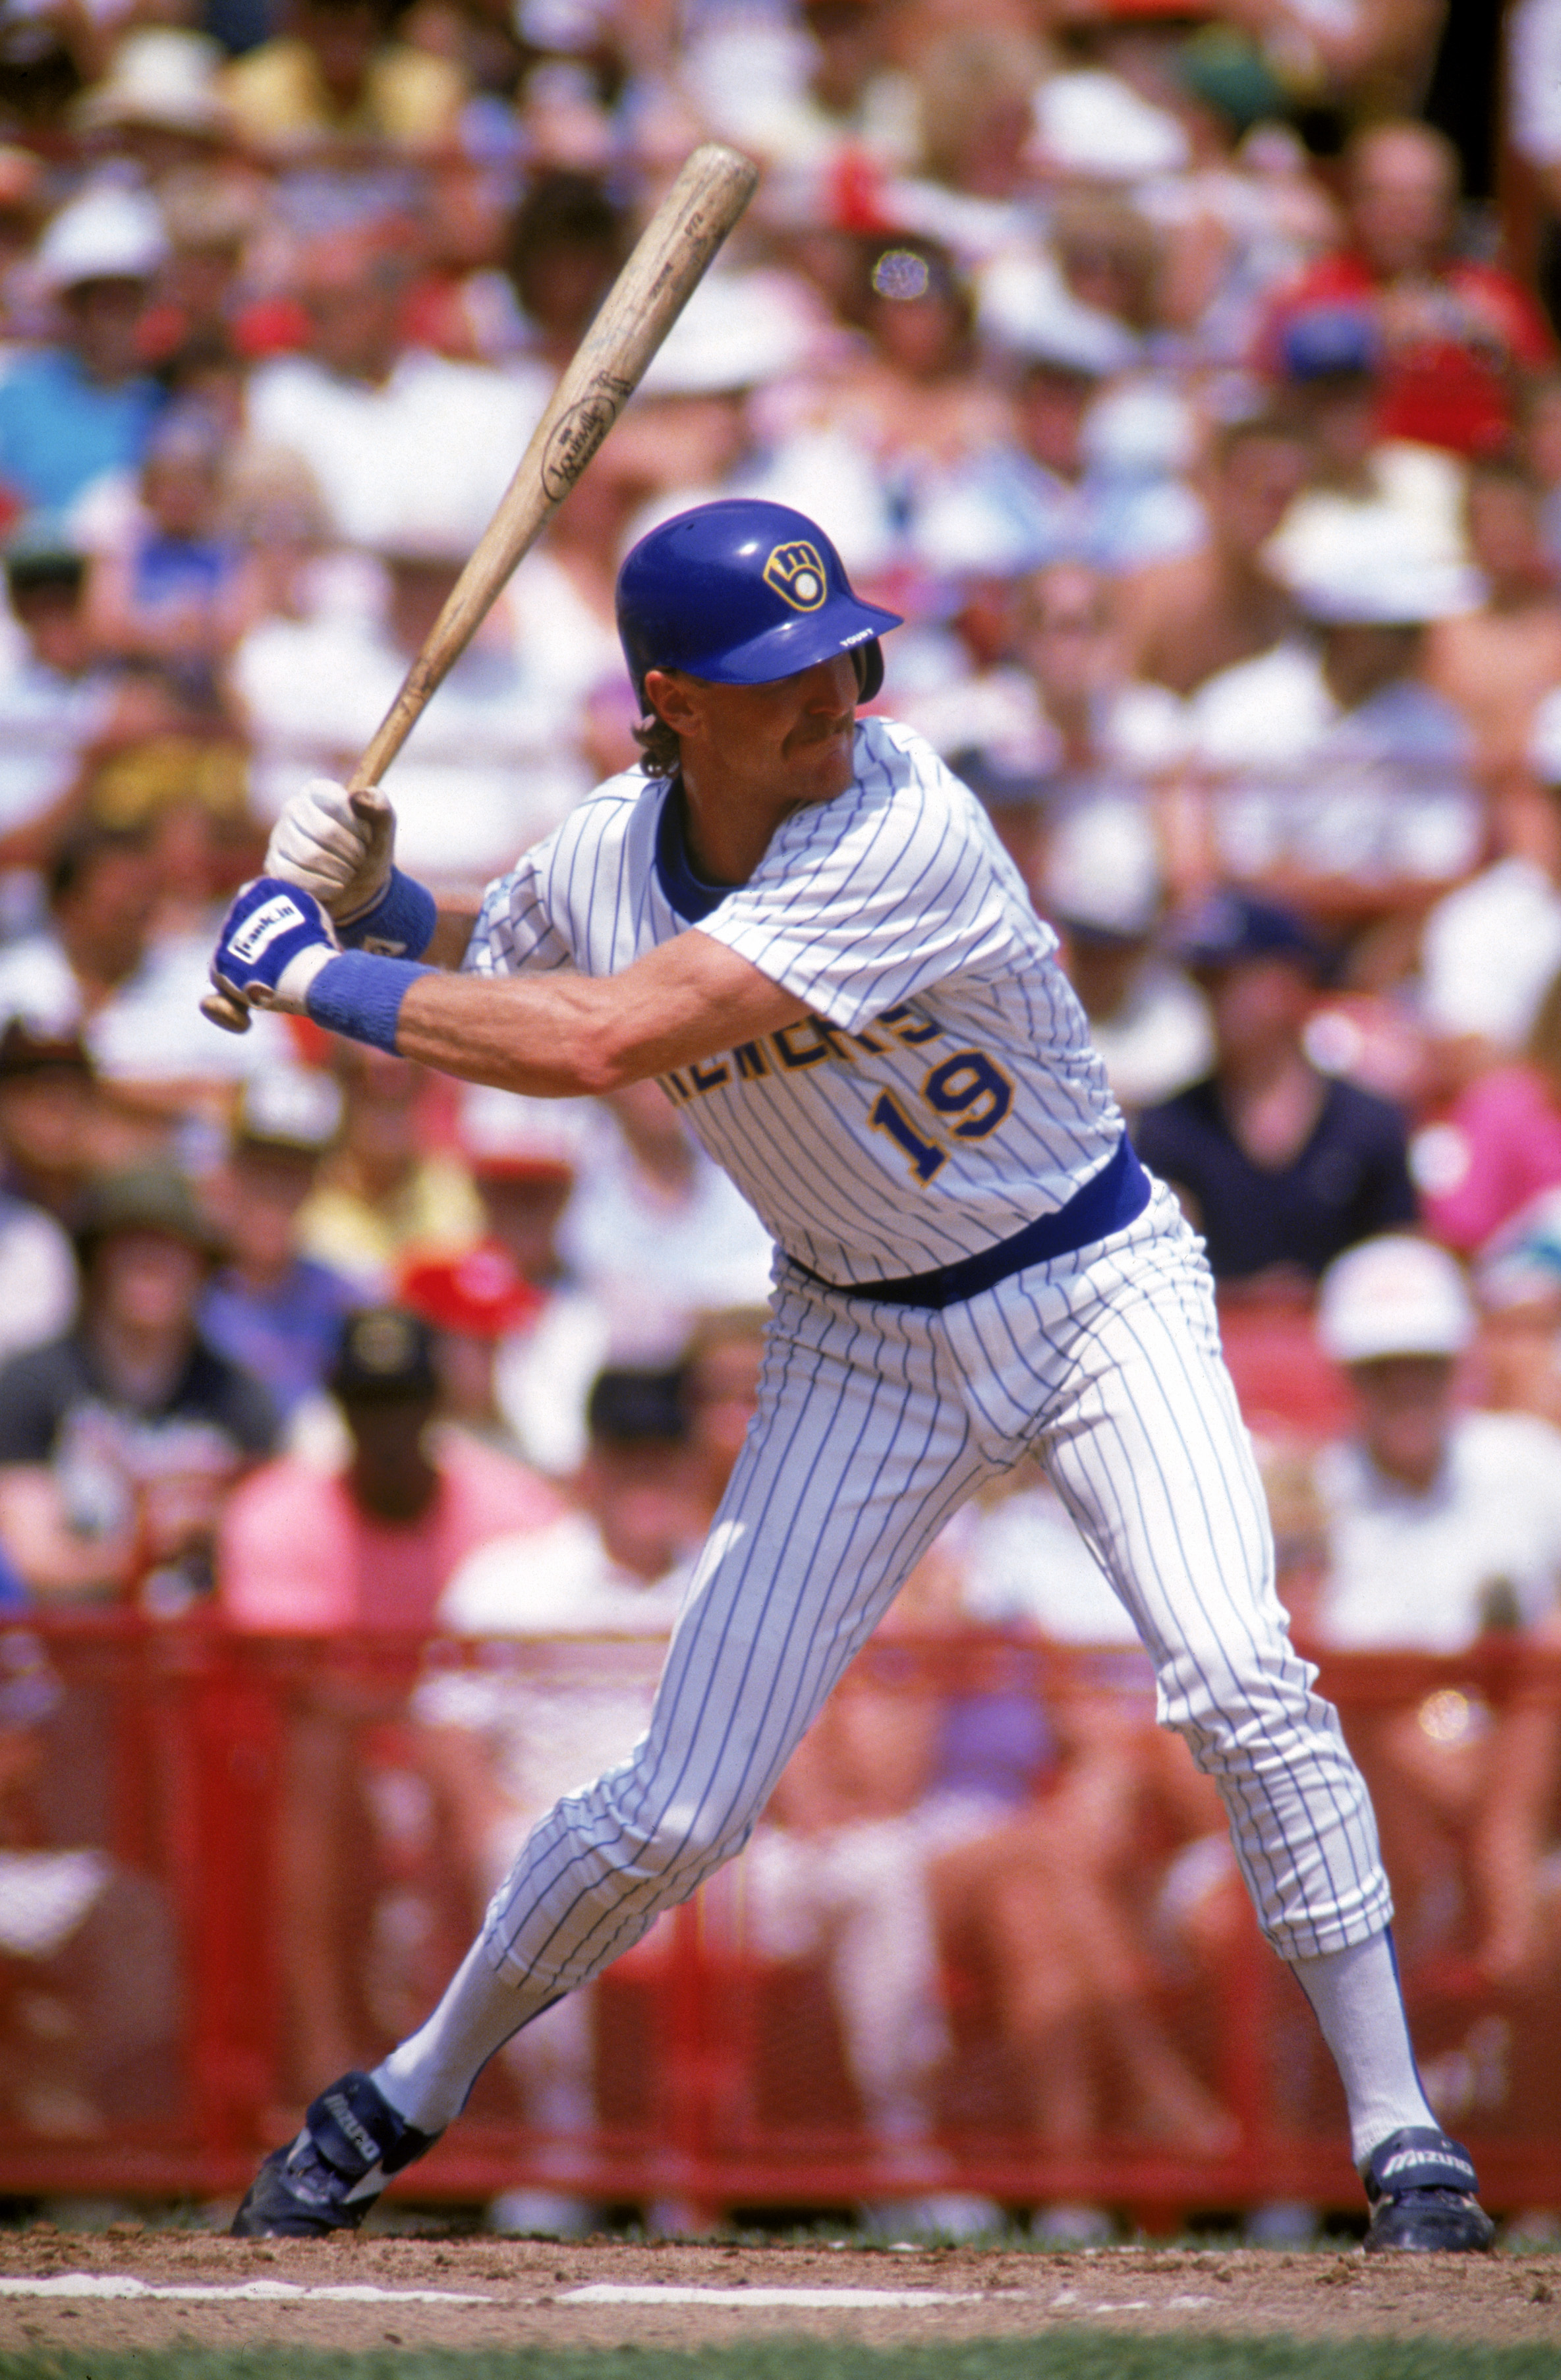 MILWAUKEE - 1989:  Robin Yount #19 of the Milwaukee Brewers bats during a game in the 1989 season at County Stadium in Milwaukee, Wisconsin. (Photo by Jonathan Daniel/Getty Images)